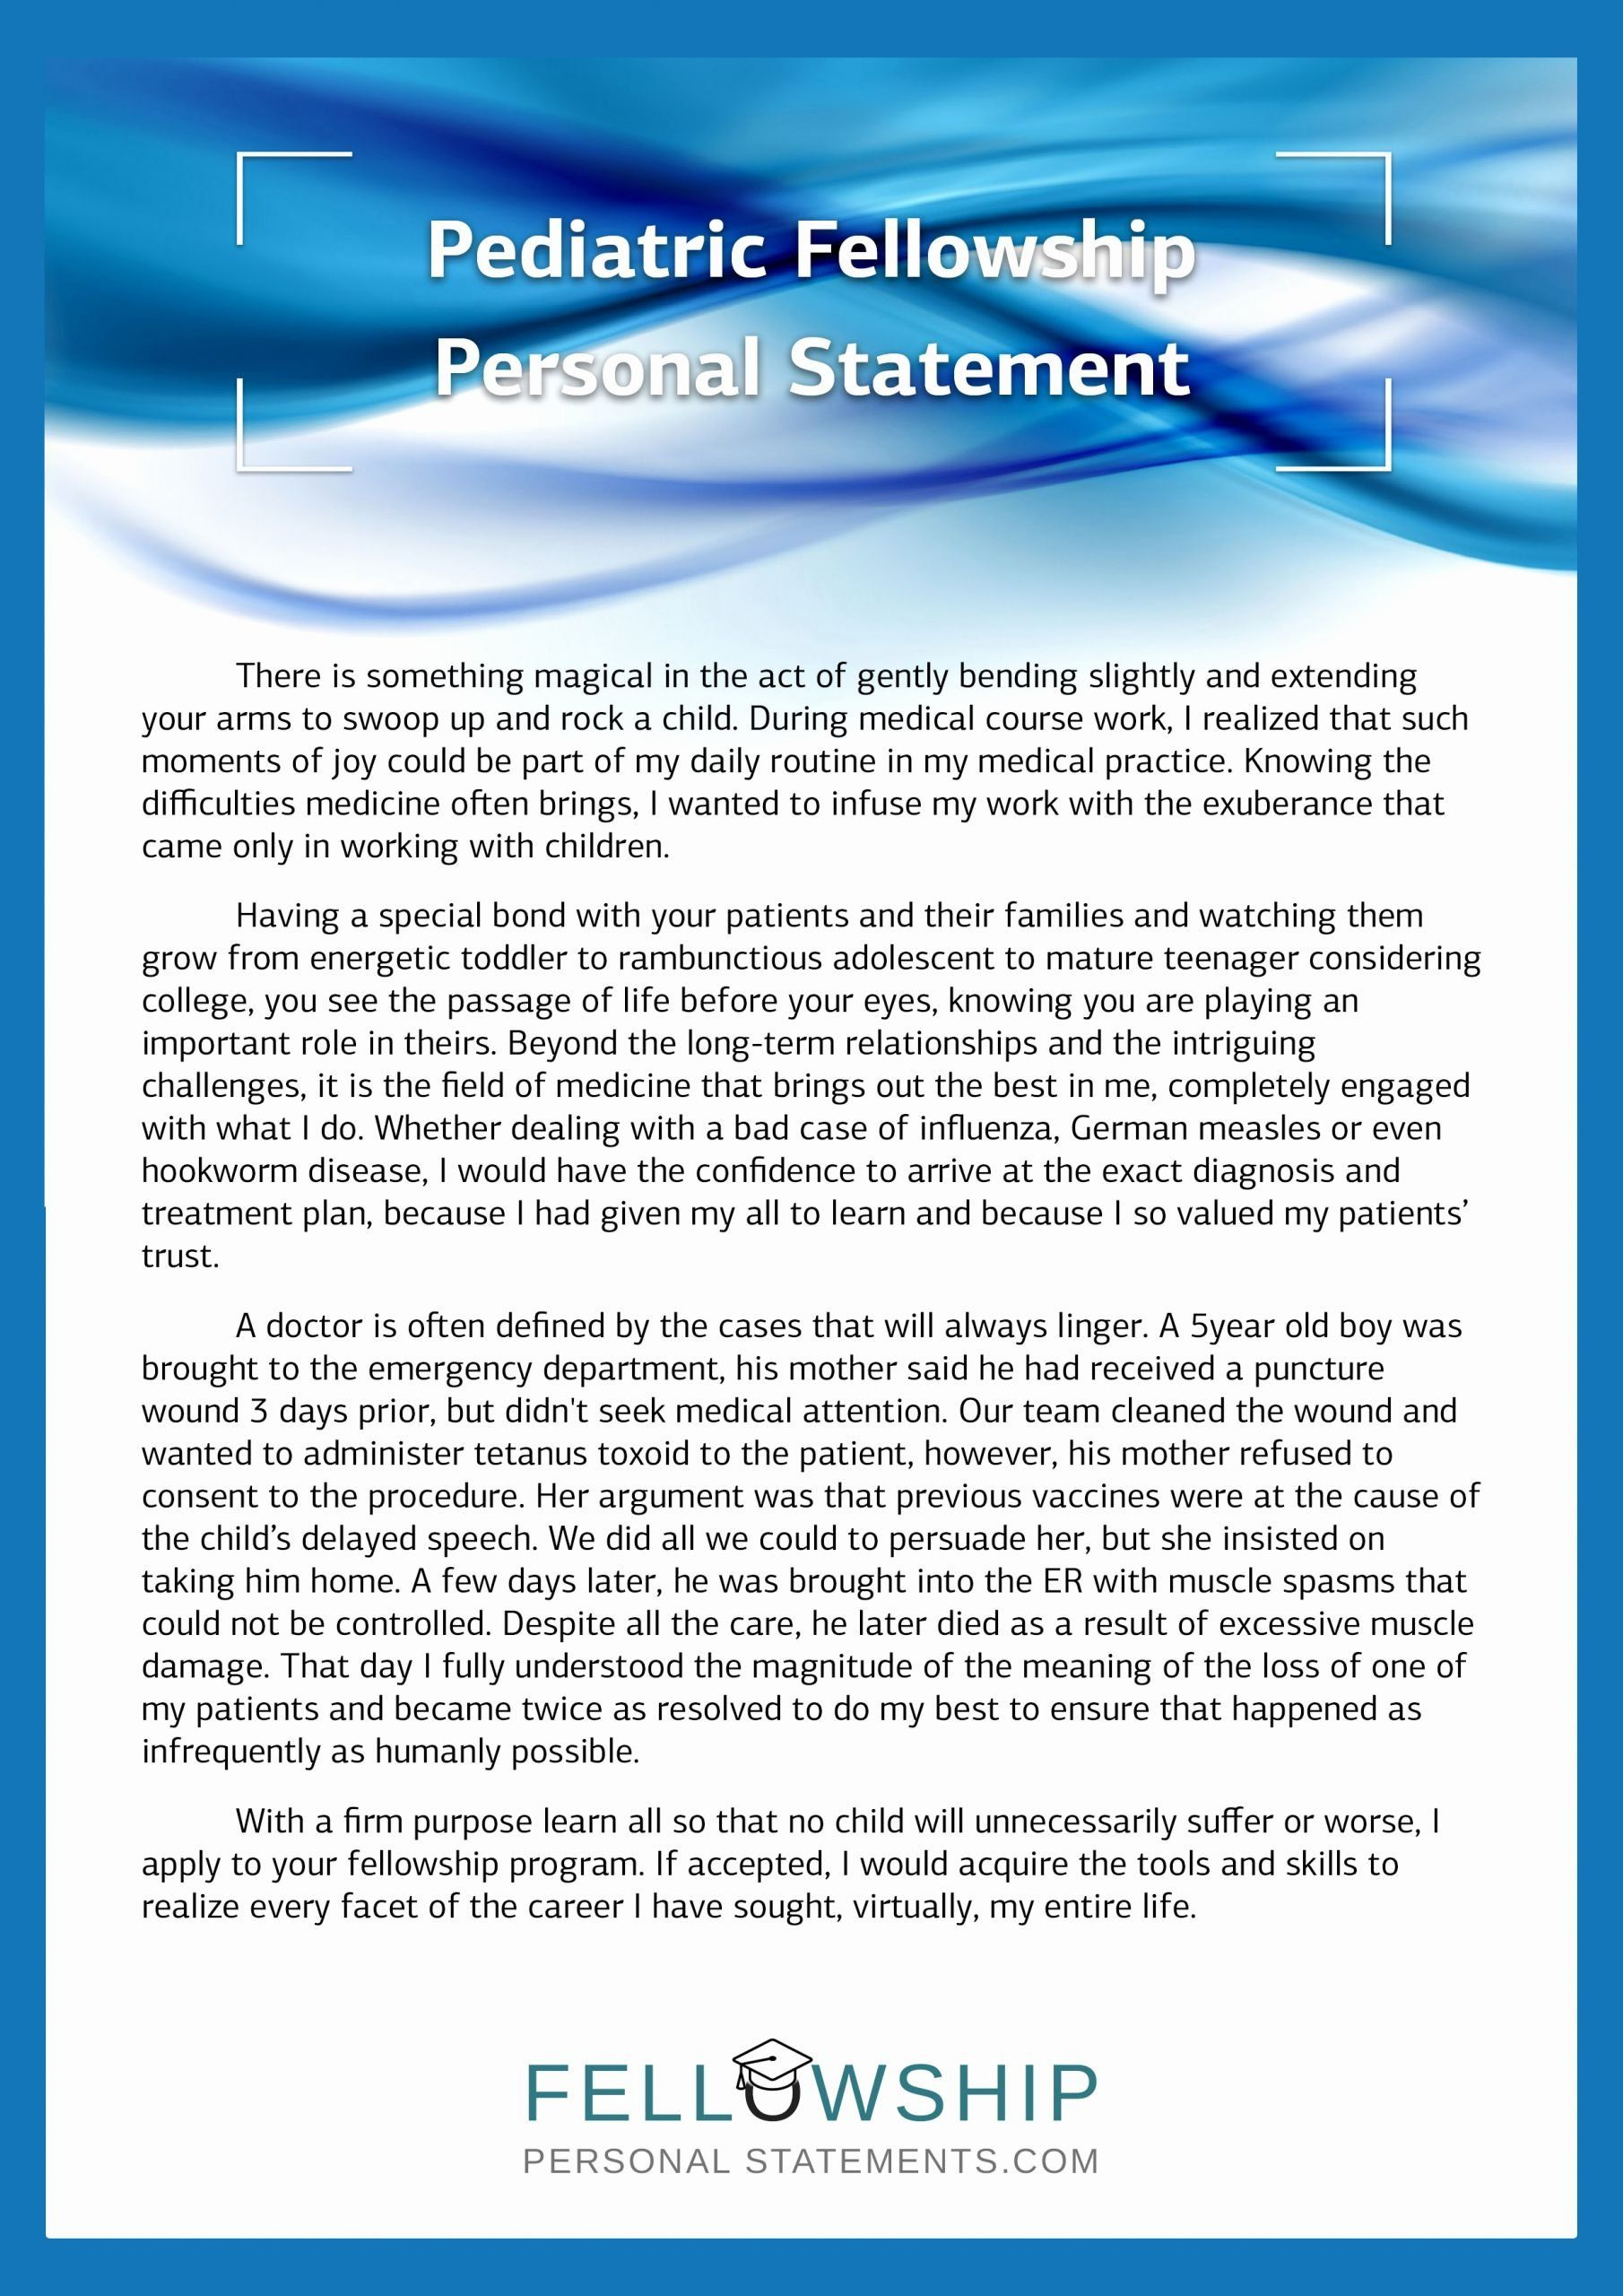 Personal Statement For Fellowship Sample Unique Best Mission Person Editing Service